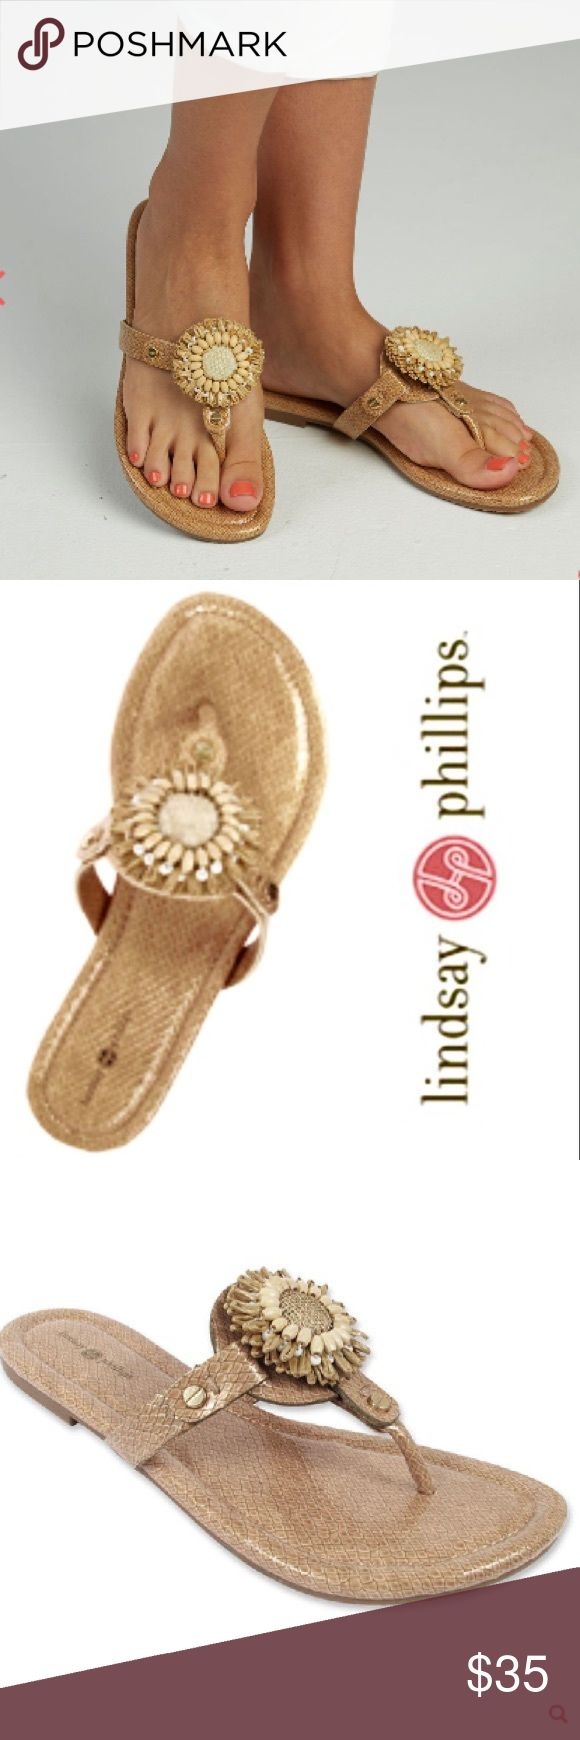 NWOT Lindsay Phillips Rosie Neutral Sandal Comfortable Lindsay Phillips sandal in a beautiful neutral faux snakeskin with raffia flower interchangeable clip.  One additional colorful clip included! Great for all your Summer outfits! Lindsay Phillips Shoes Sandals